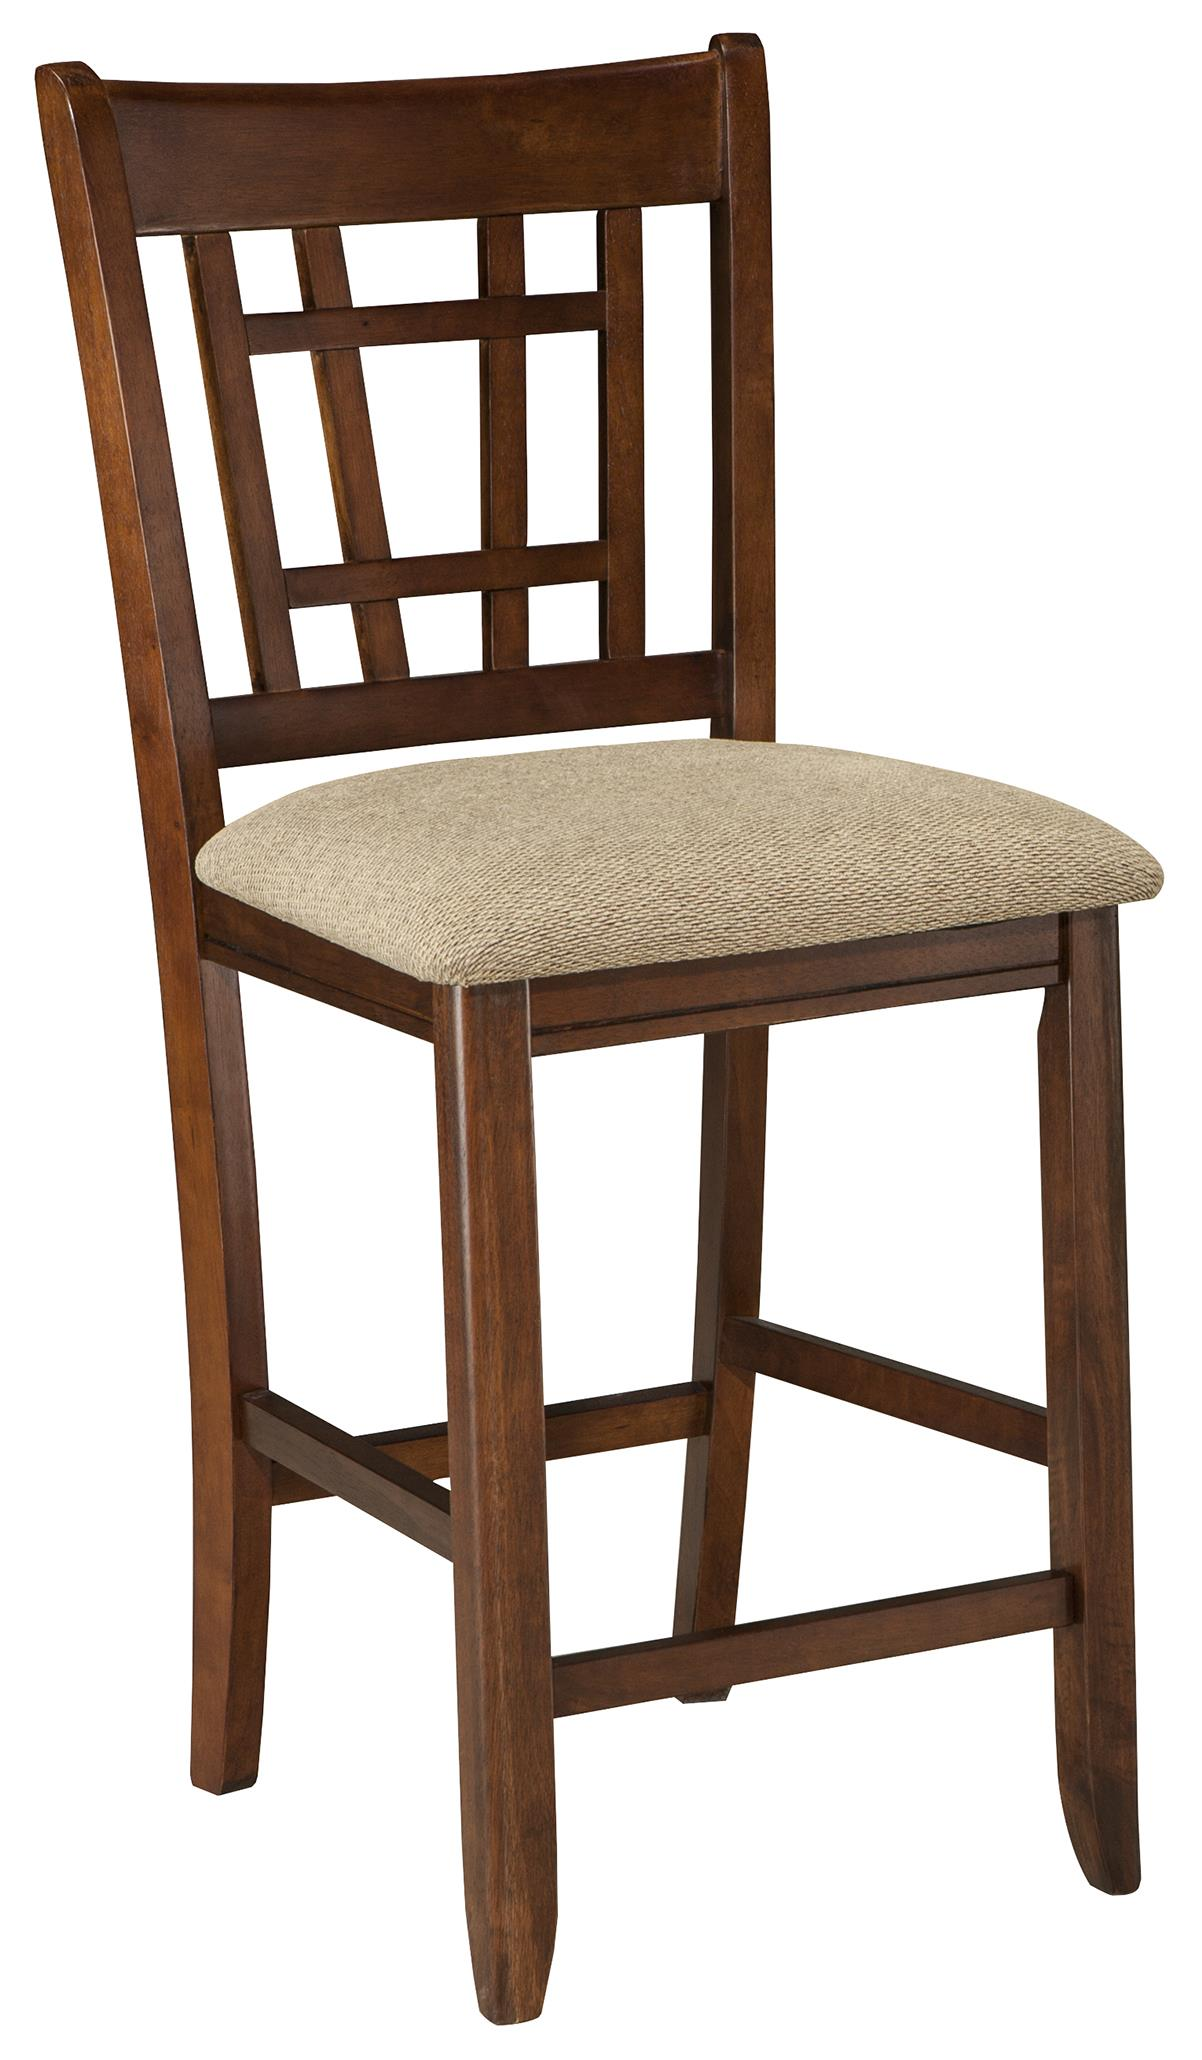 "Intercon Mission Casuals 24"" Lattice Barstool - Item Number: MI-BS-850C-DMI-K24"